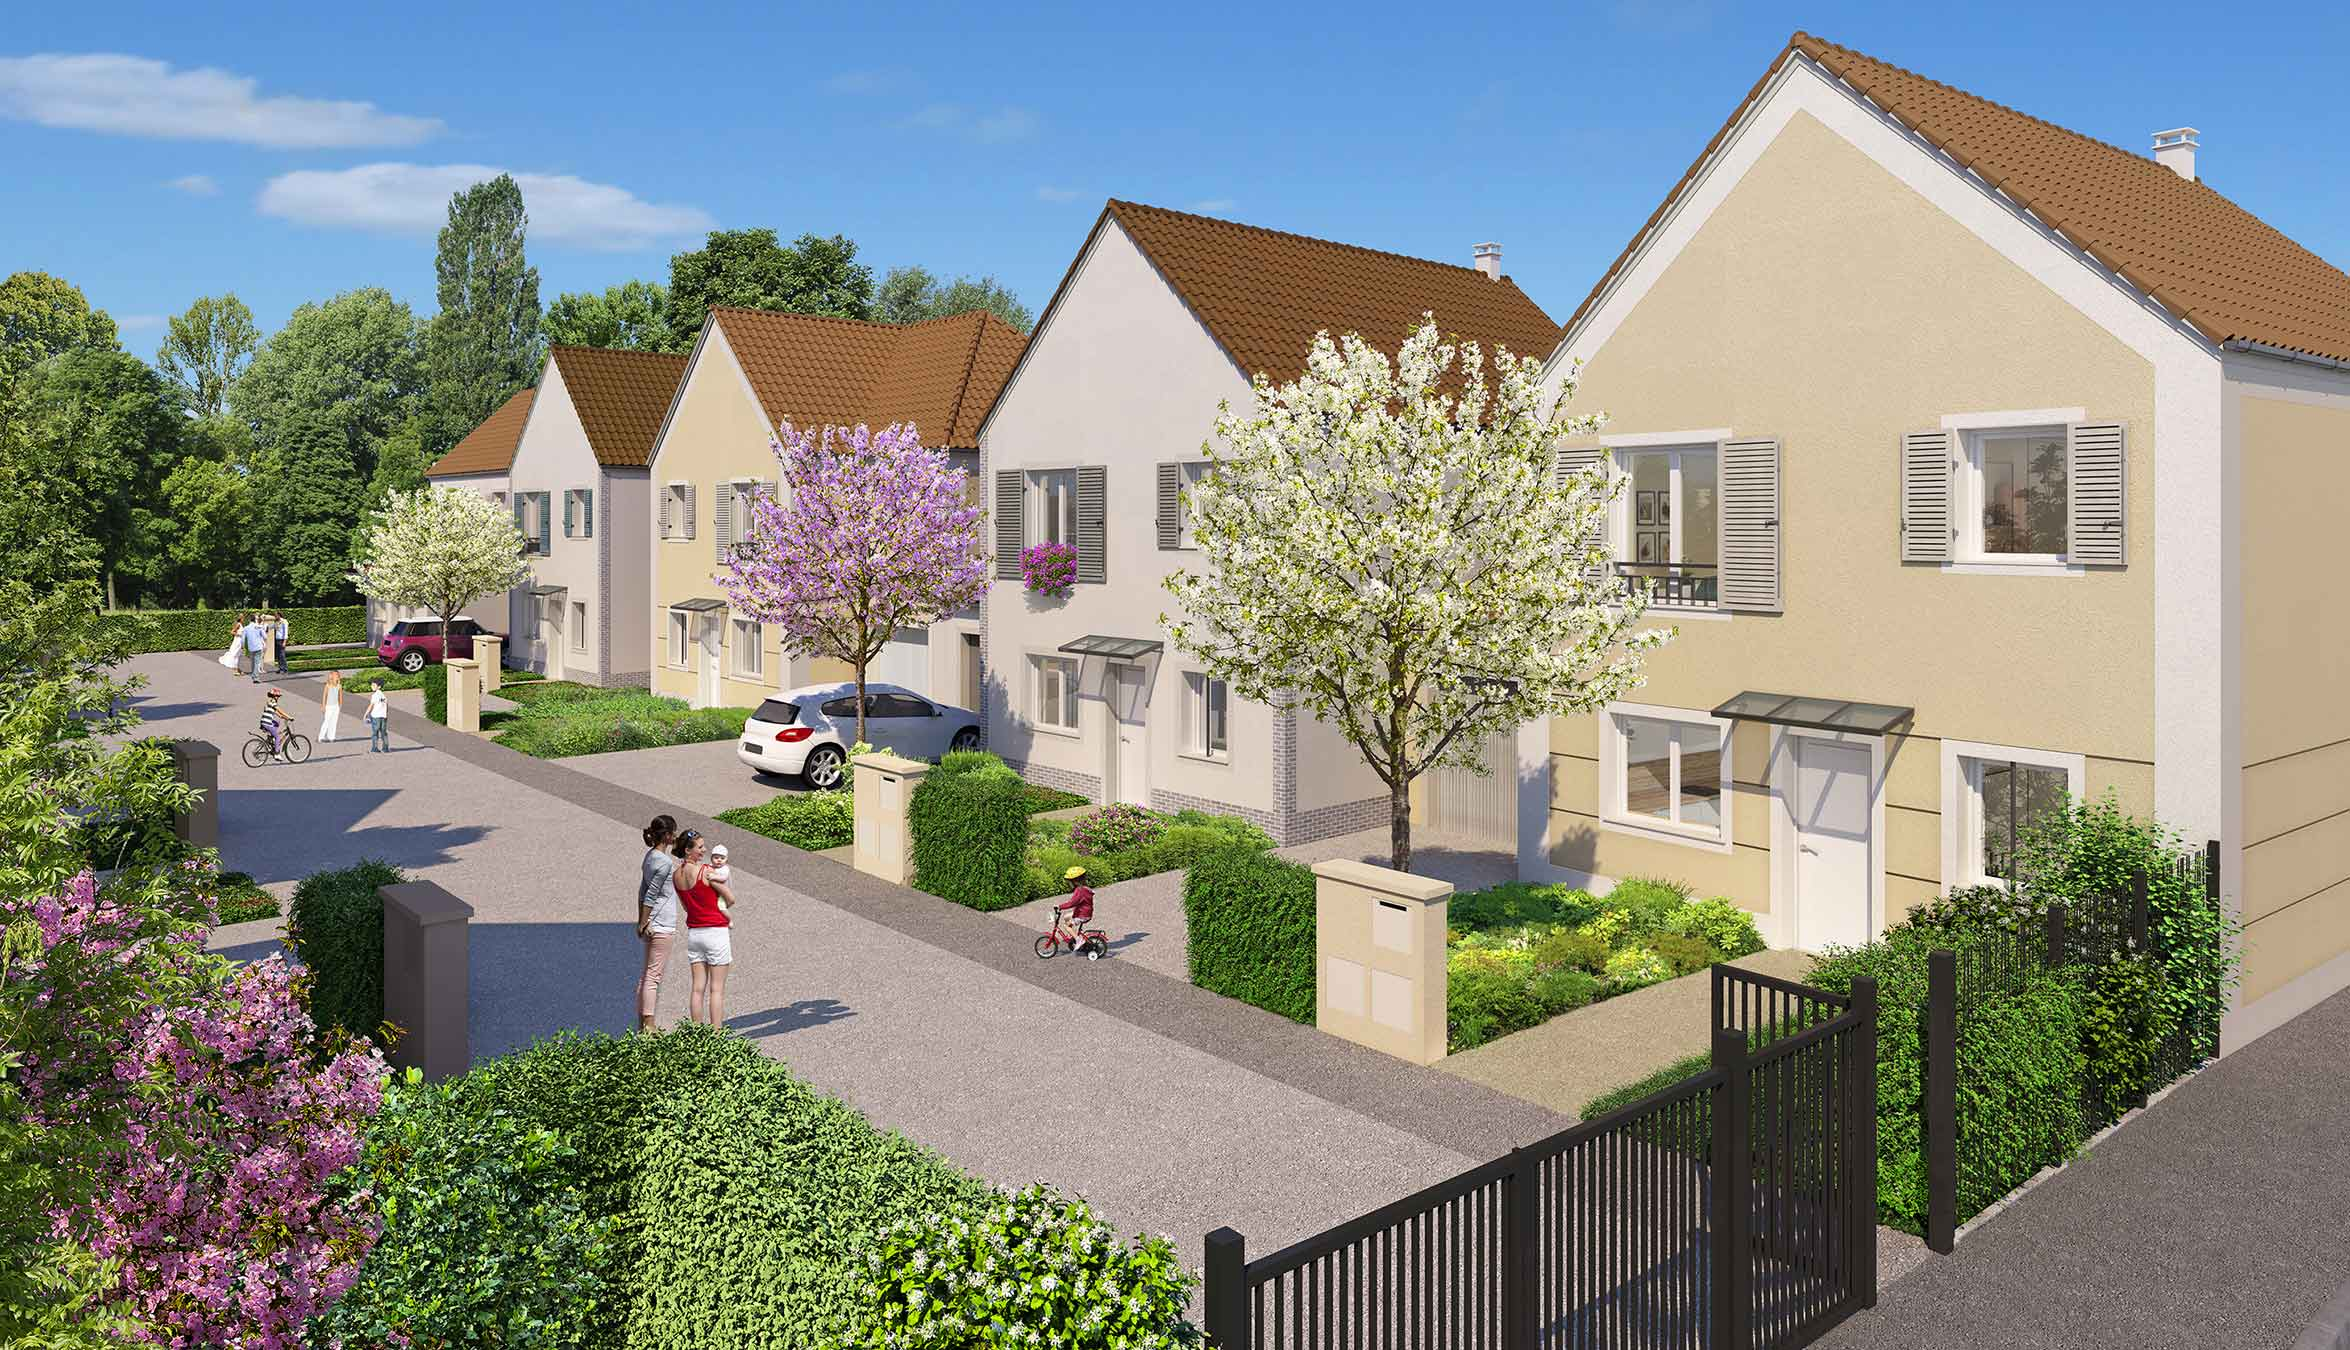 Villas confidence programme immobilier neuf eragny for Immobilier neuf idf